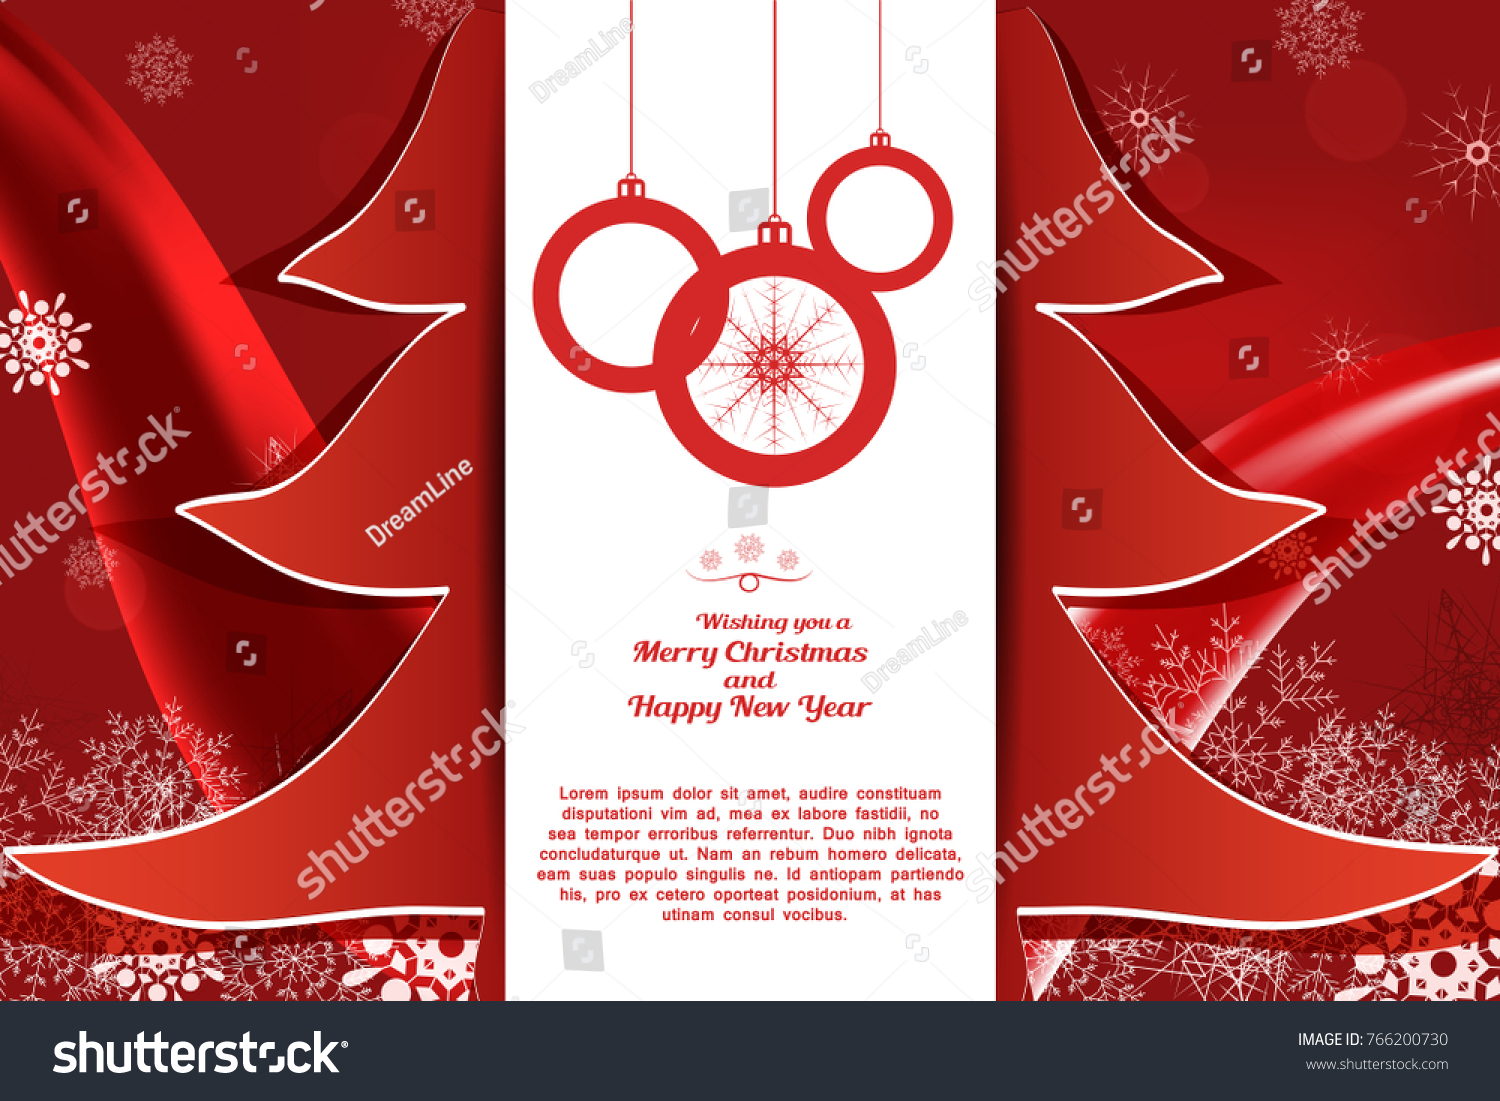 Wish You A Merry Christmas And A Happy New Year Flyer Mersn